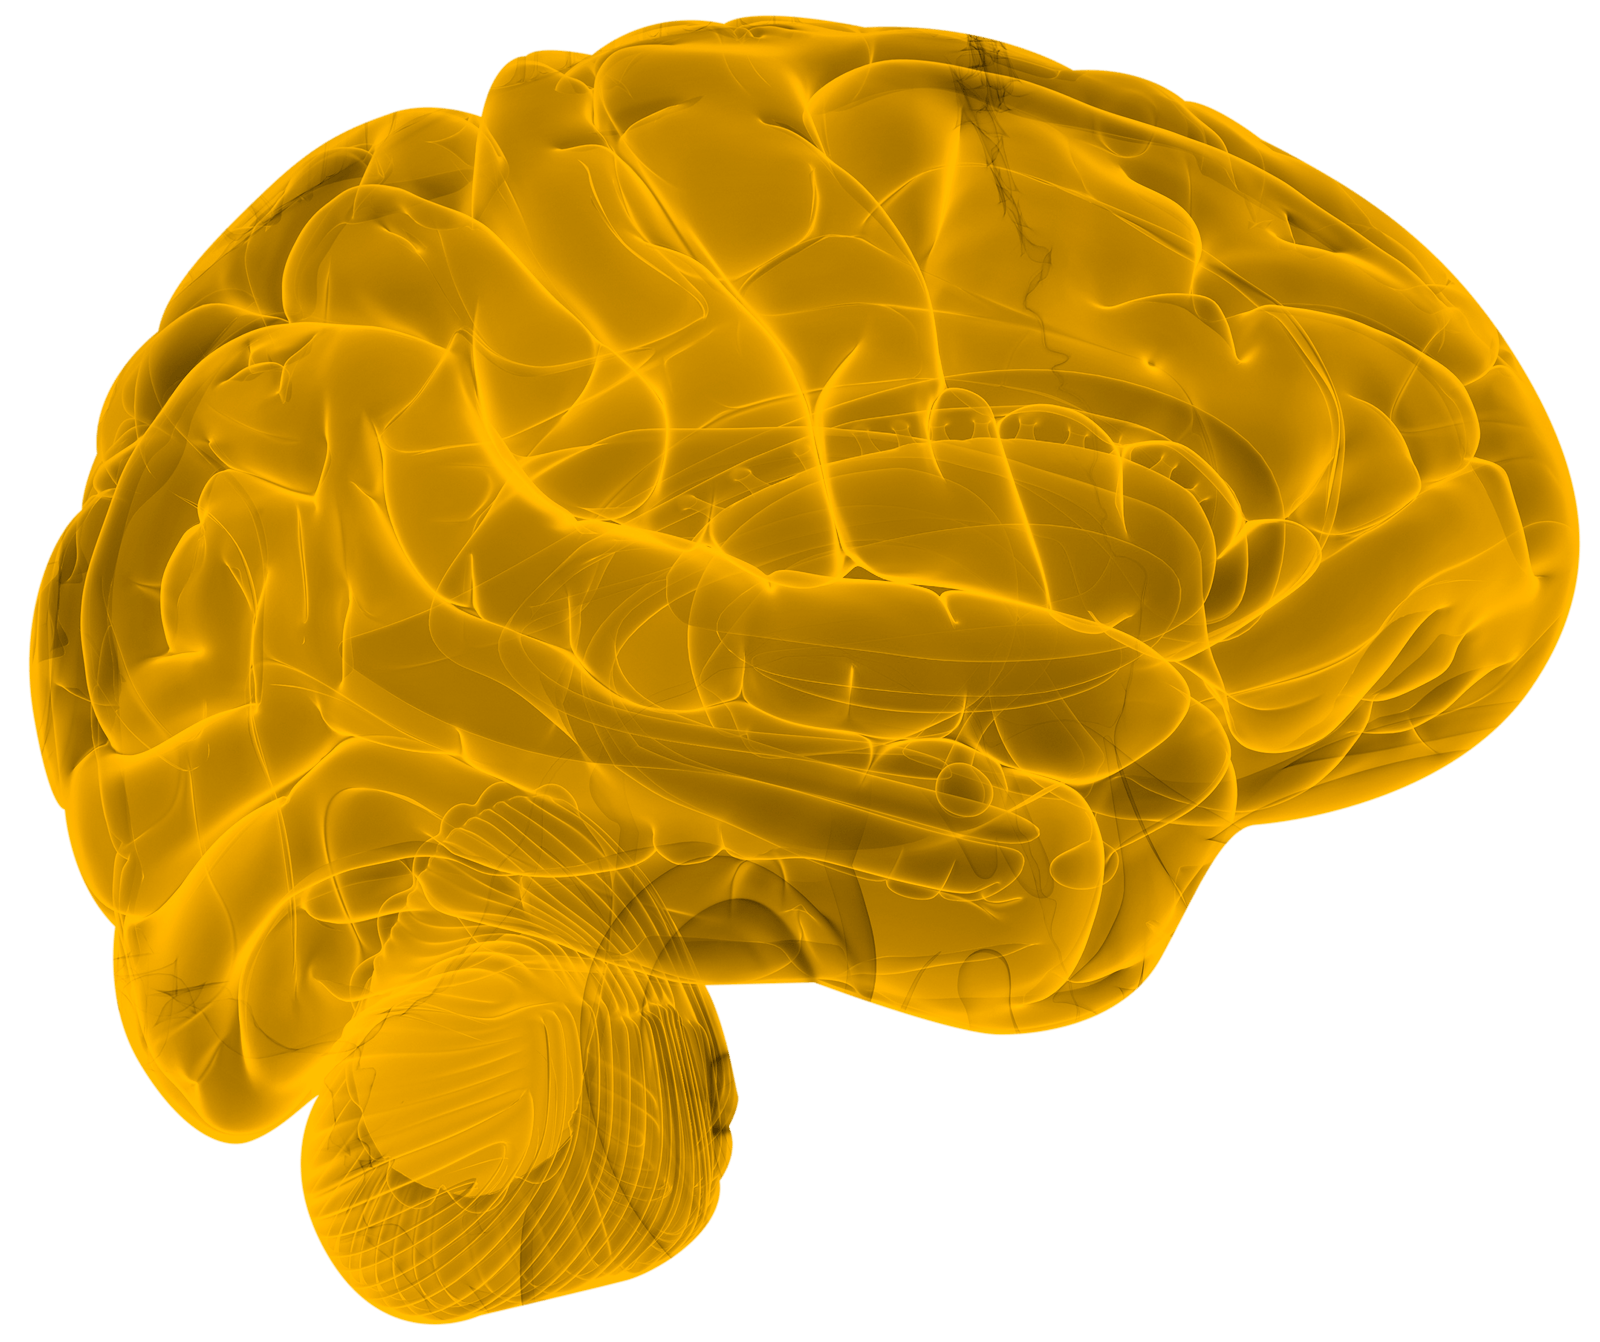 Collaborative imaging Brain